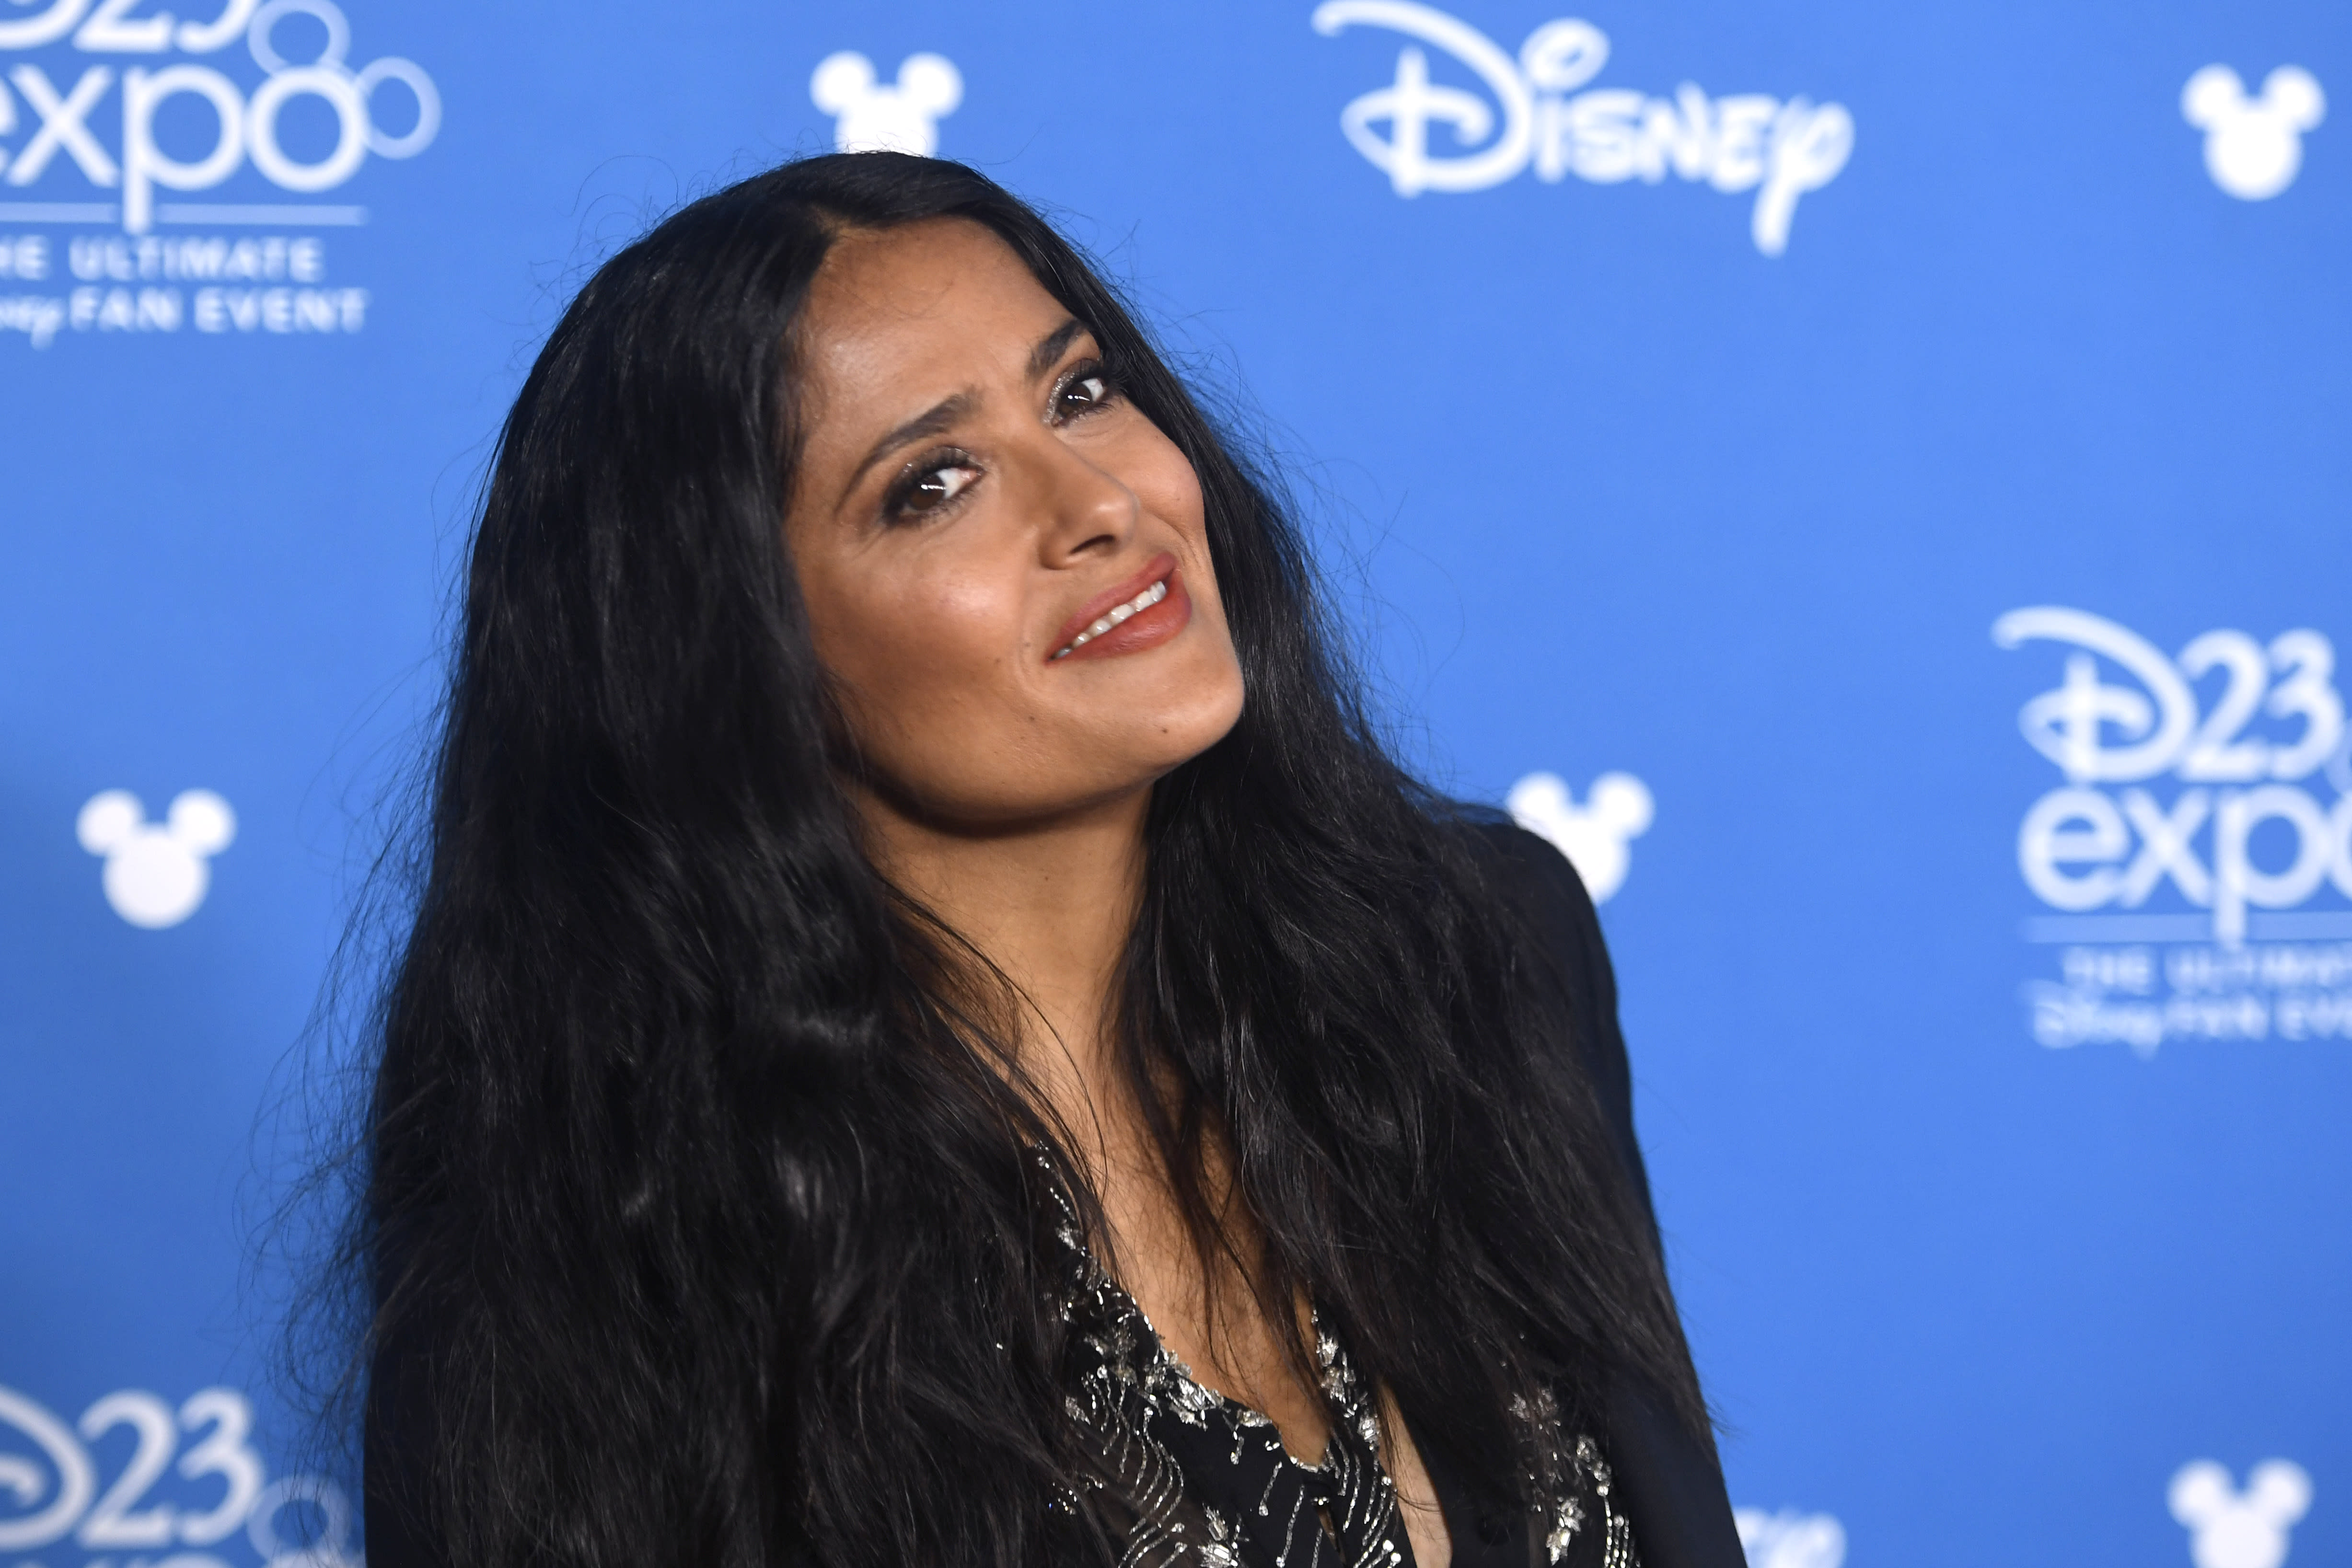 Salma Hayek dances in bikini top in throwback from movie: 'Once upon a time ... when I was skinny'